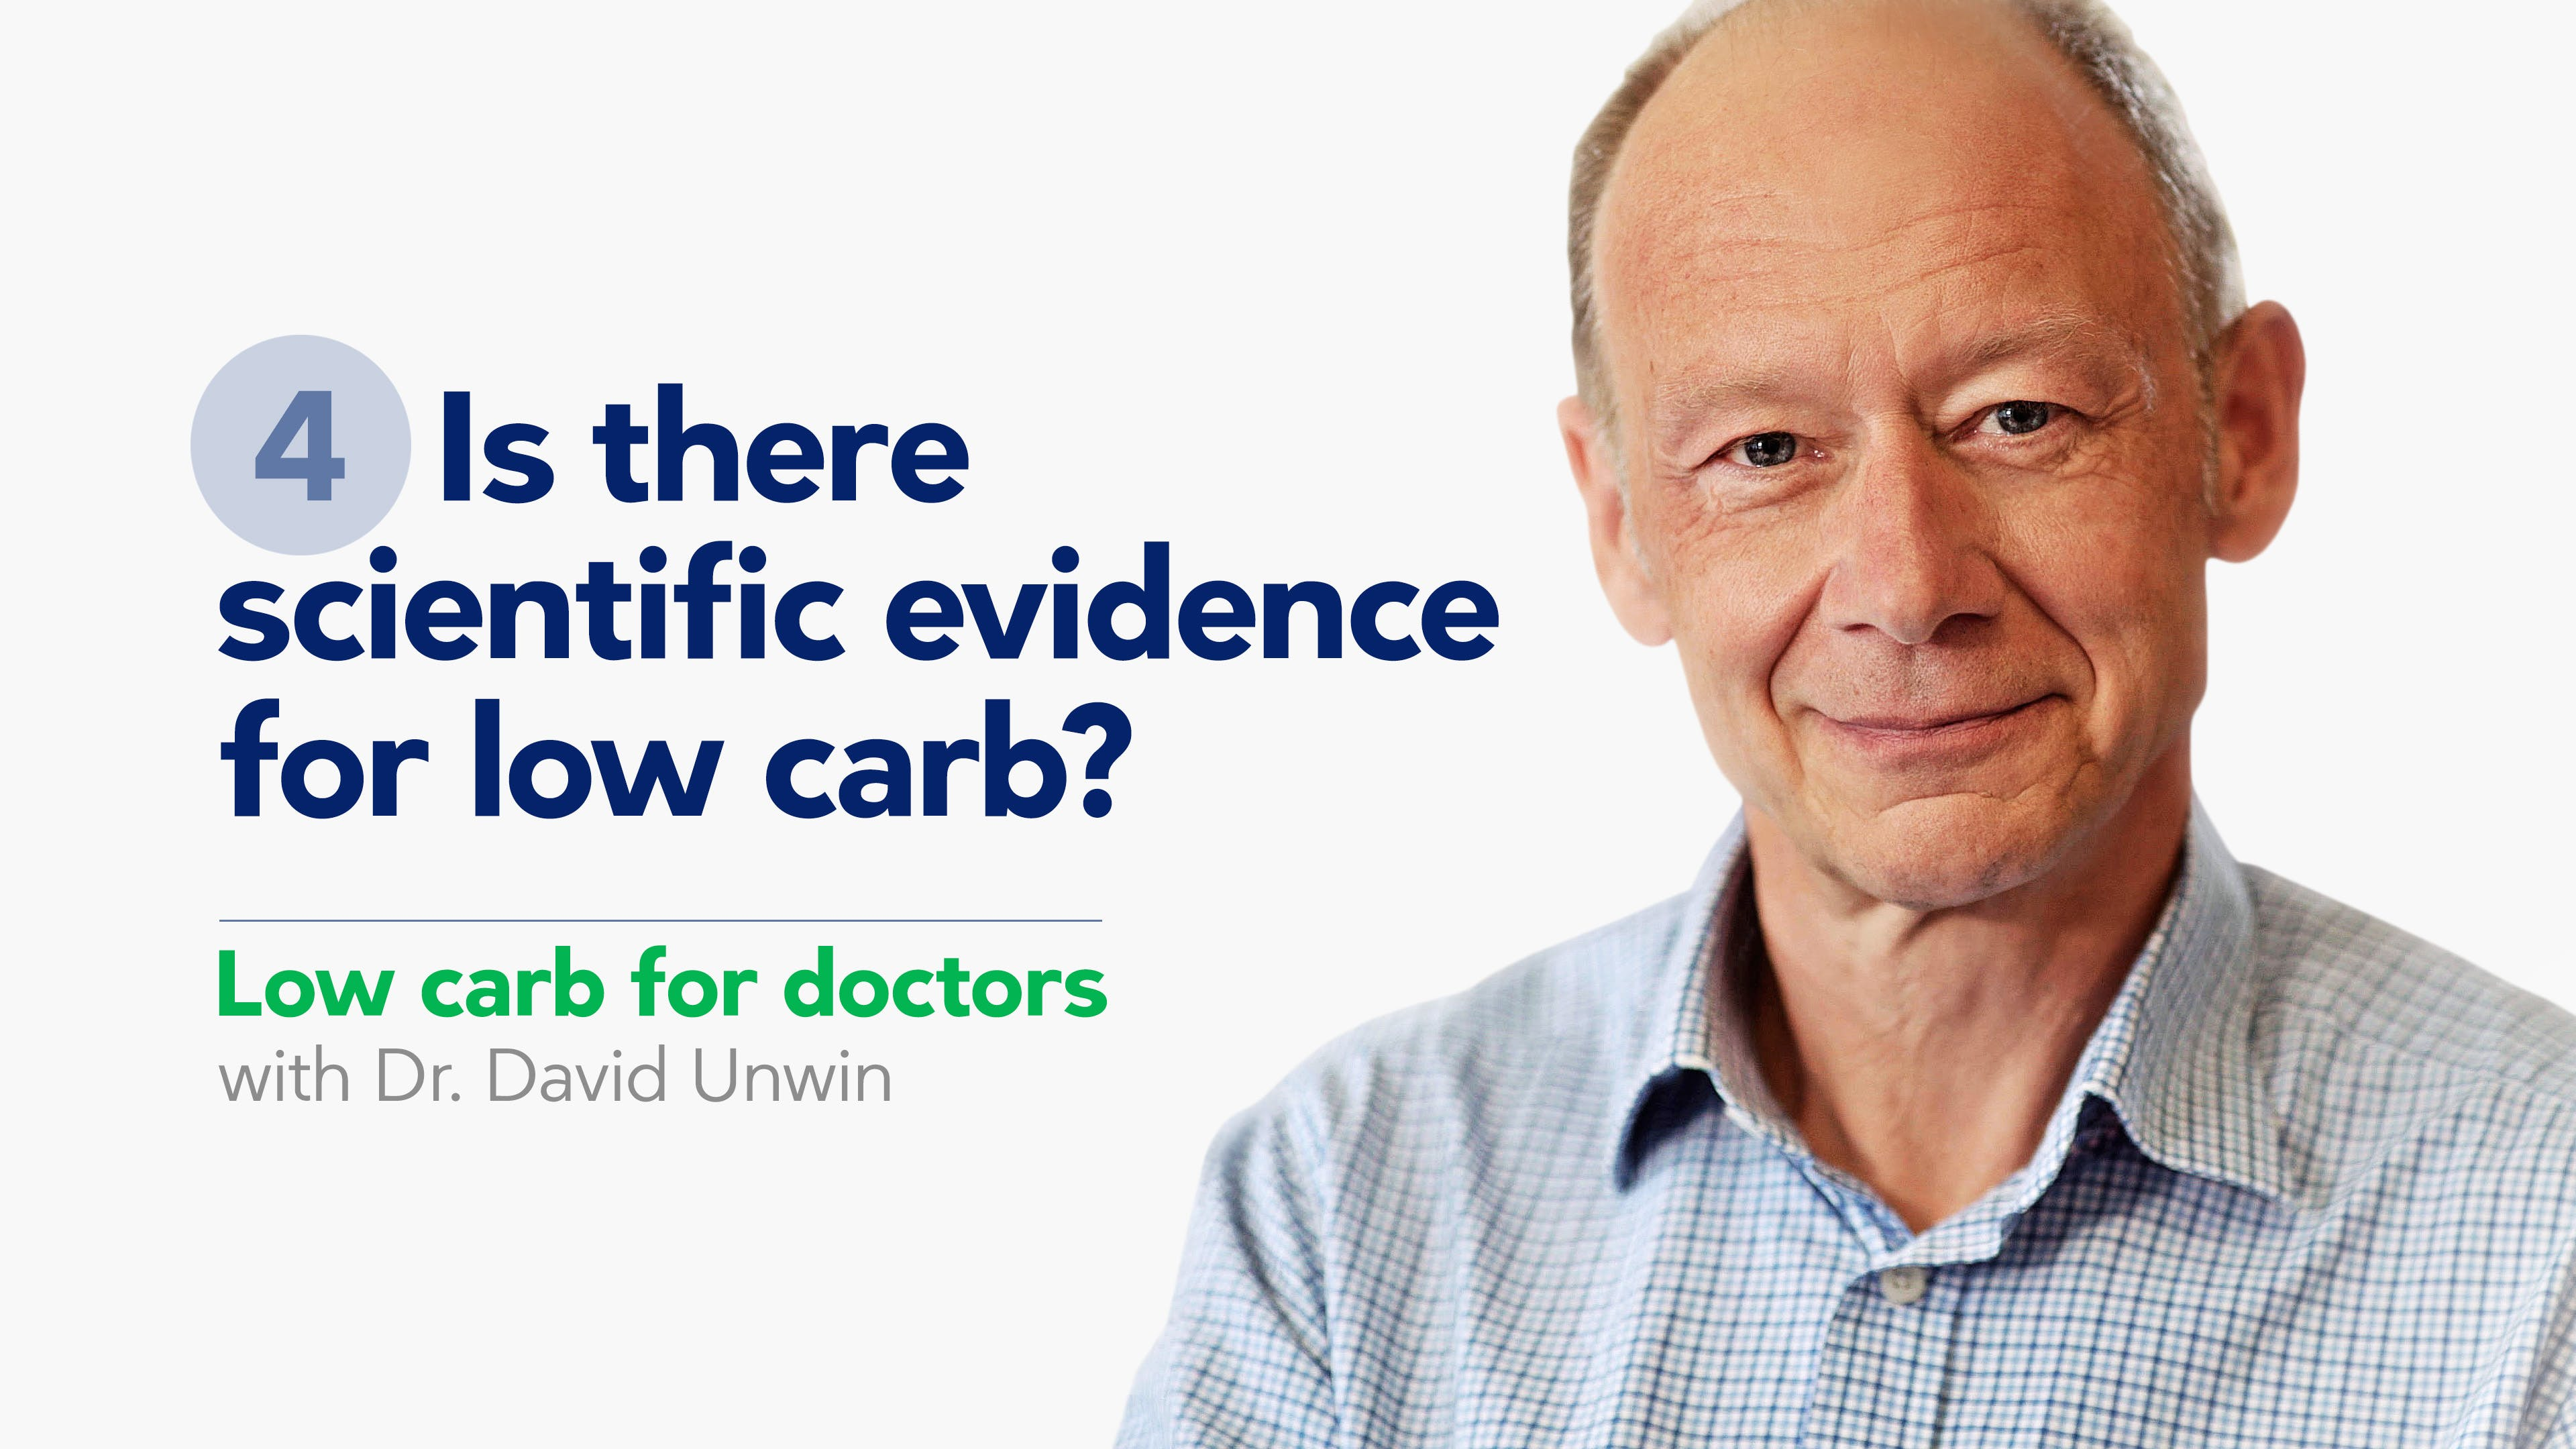 Is there scientific evidence for low carb?